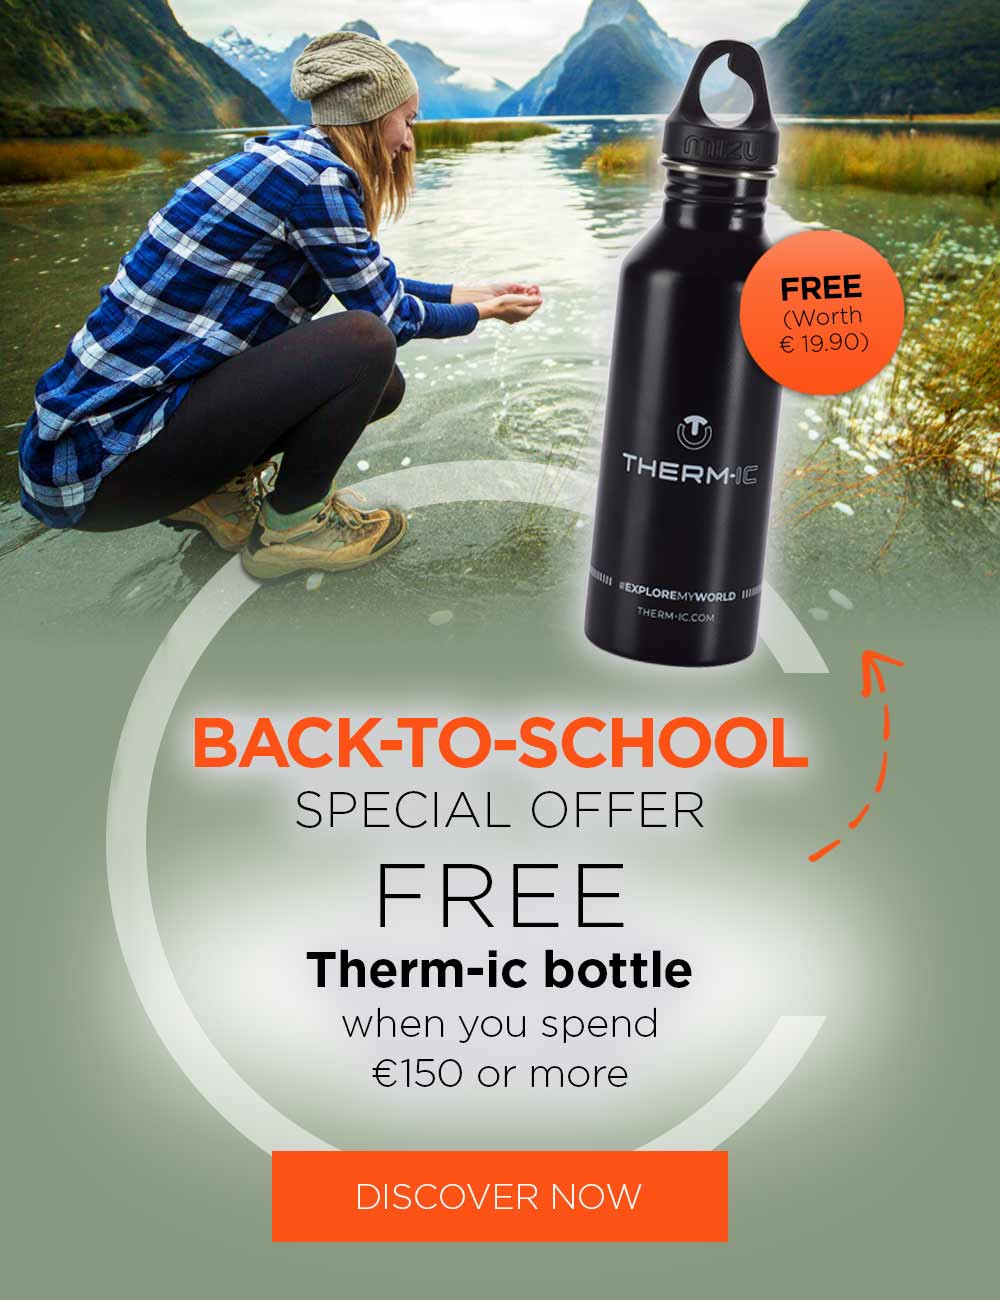 Get your free Therm-ic gourd when you spend 150€ or more